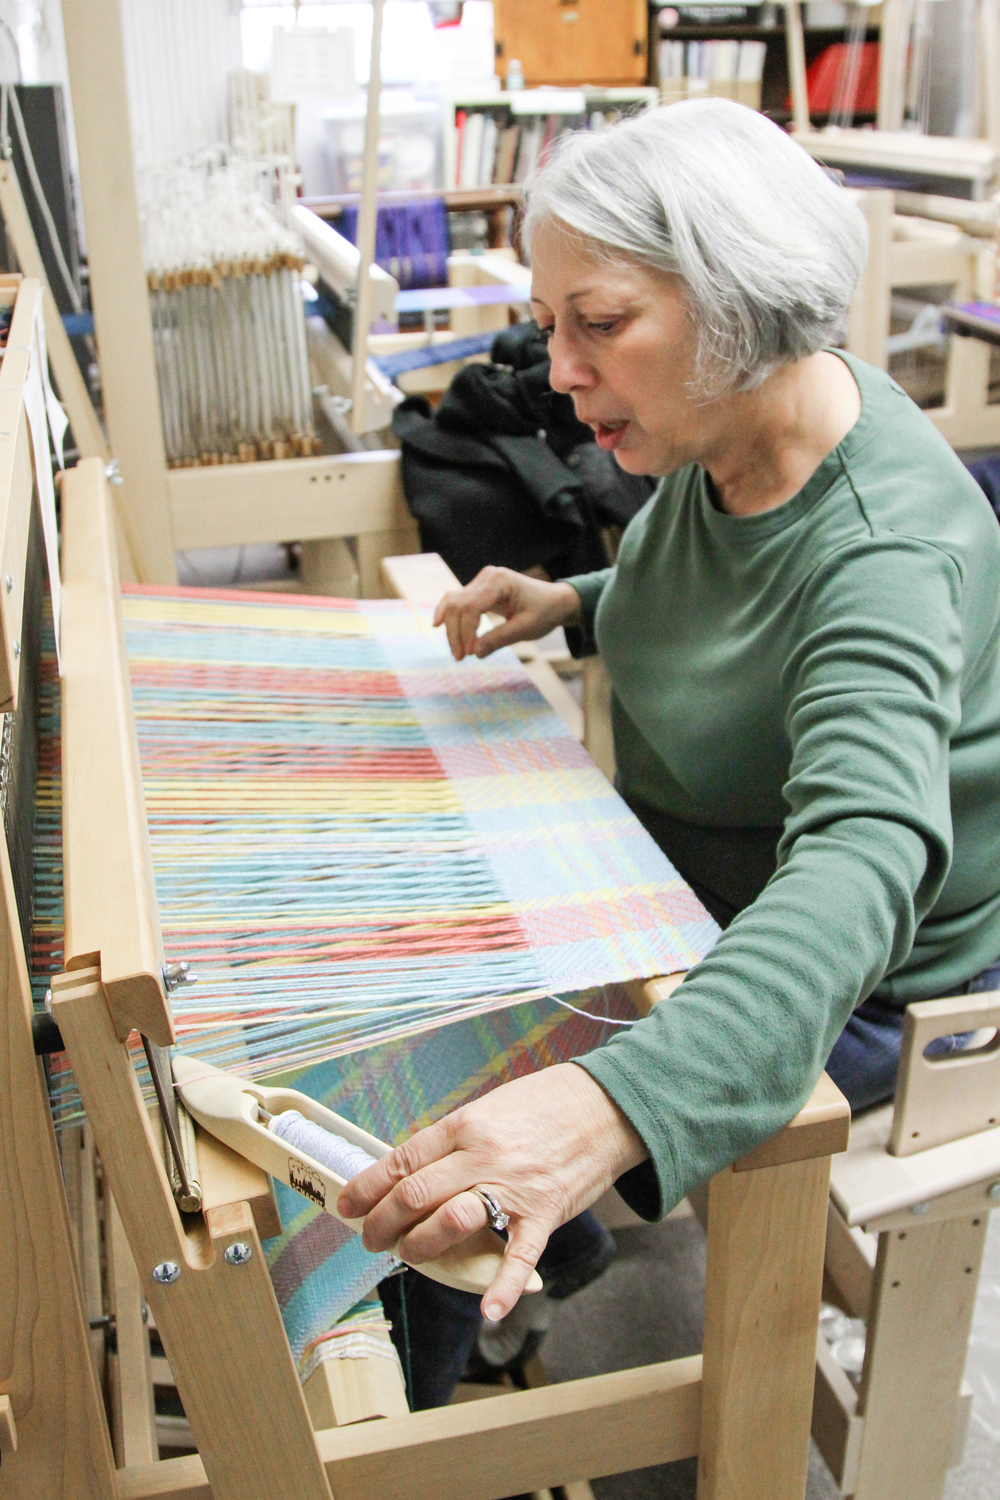 January 30, 2014 -- Local weaver Vicki Patillo weaves the first of 5 blankets that will be donated to Help Our Kids, a local nonprofit organization for foster children. Patillo is one of several members of the Pioneer Valley Weavers Guild who are donating their time.